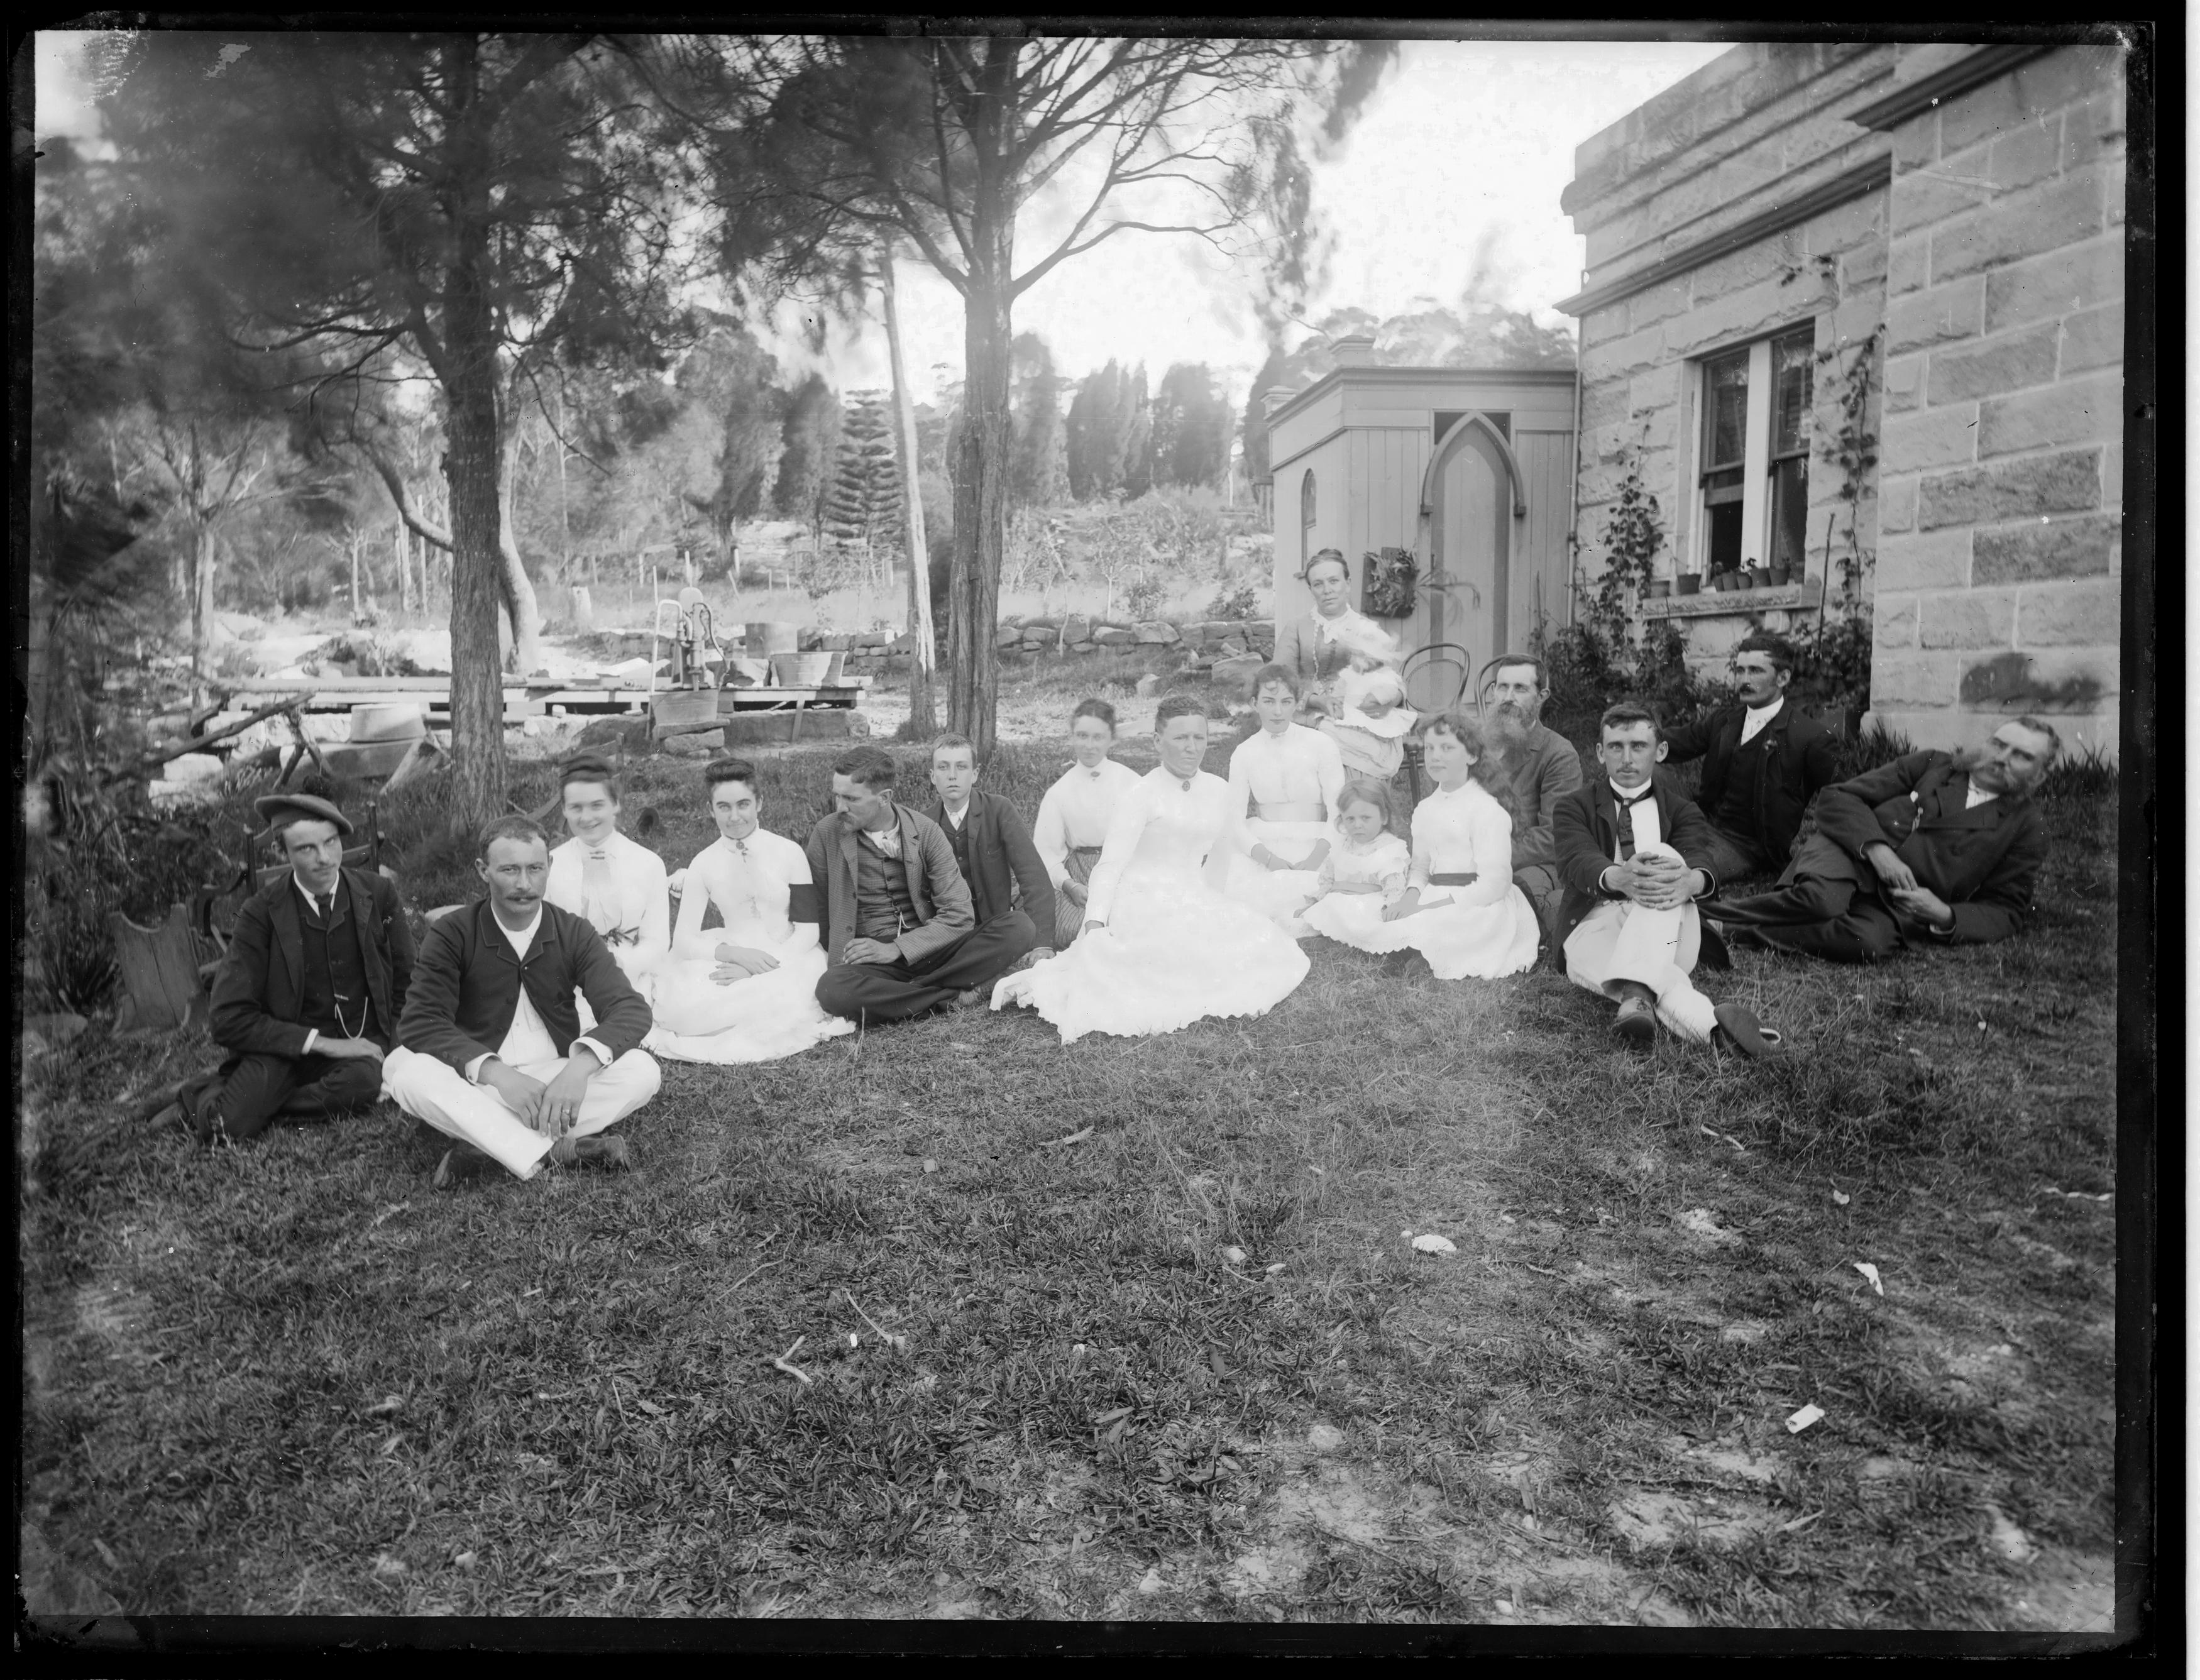 Black and white photograph of family sitting on the grass next to a sandstone homestead.